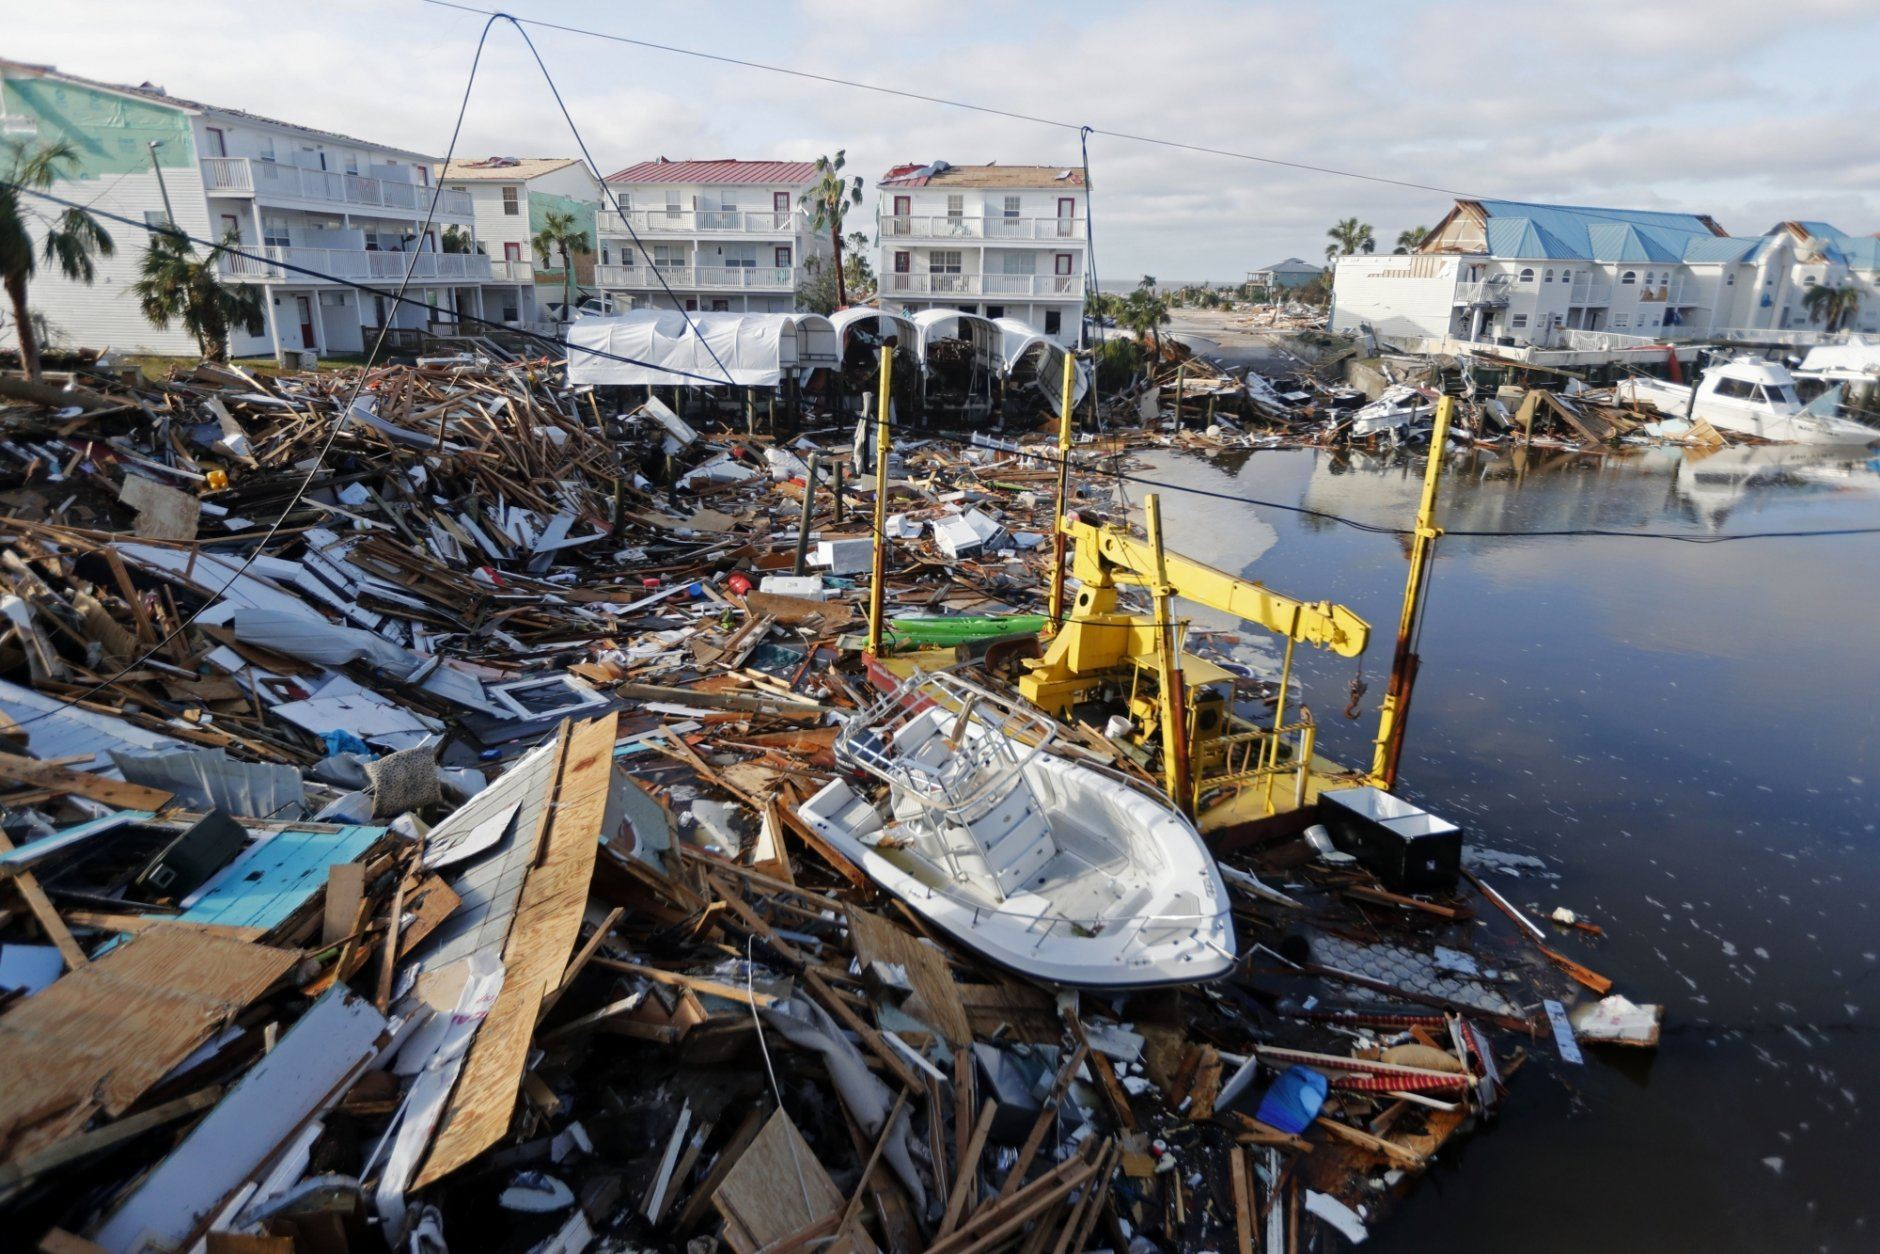 FILE - In this Oct. 11, 2018 file photo, a boat sits amidst debris in the aftermath of Hurricane Michael in Mexico Beach, Fla. Weather forecasters have posthumously upgraded last fall's Hurricane Michael from a Category 4 storm to a Category 5. The National Oceanic and Atmospheric Administration announced the storm's upgraded status Friday, making Michael only the fourth storm on record to have hit the U.S. as a Category 5 hurricane. (AP Photo/Gerald Herbert, File)